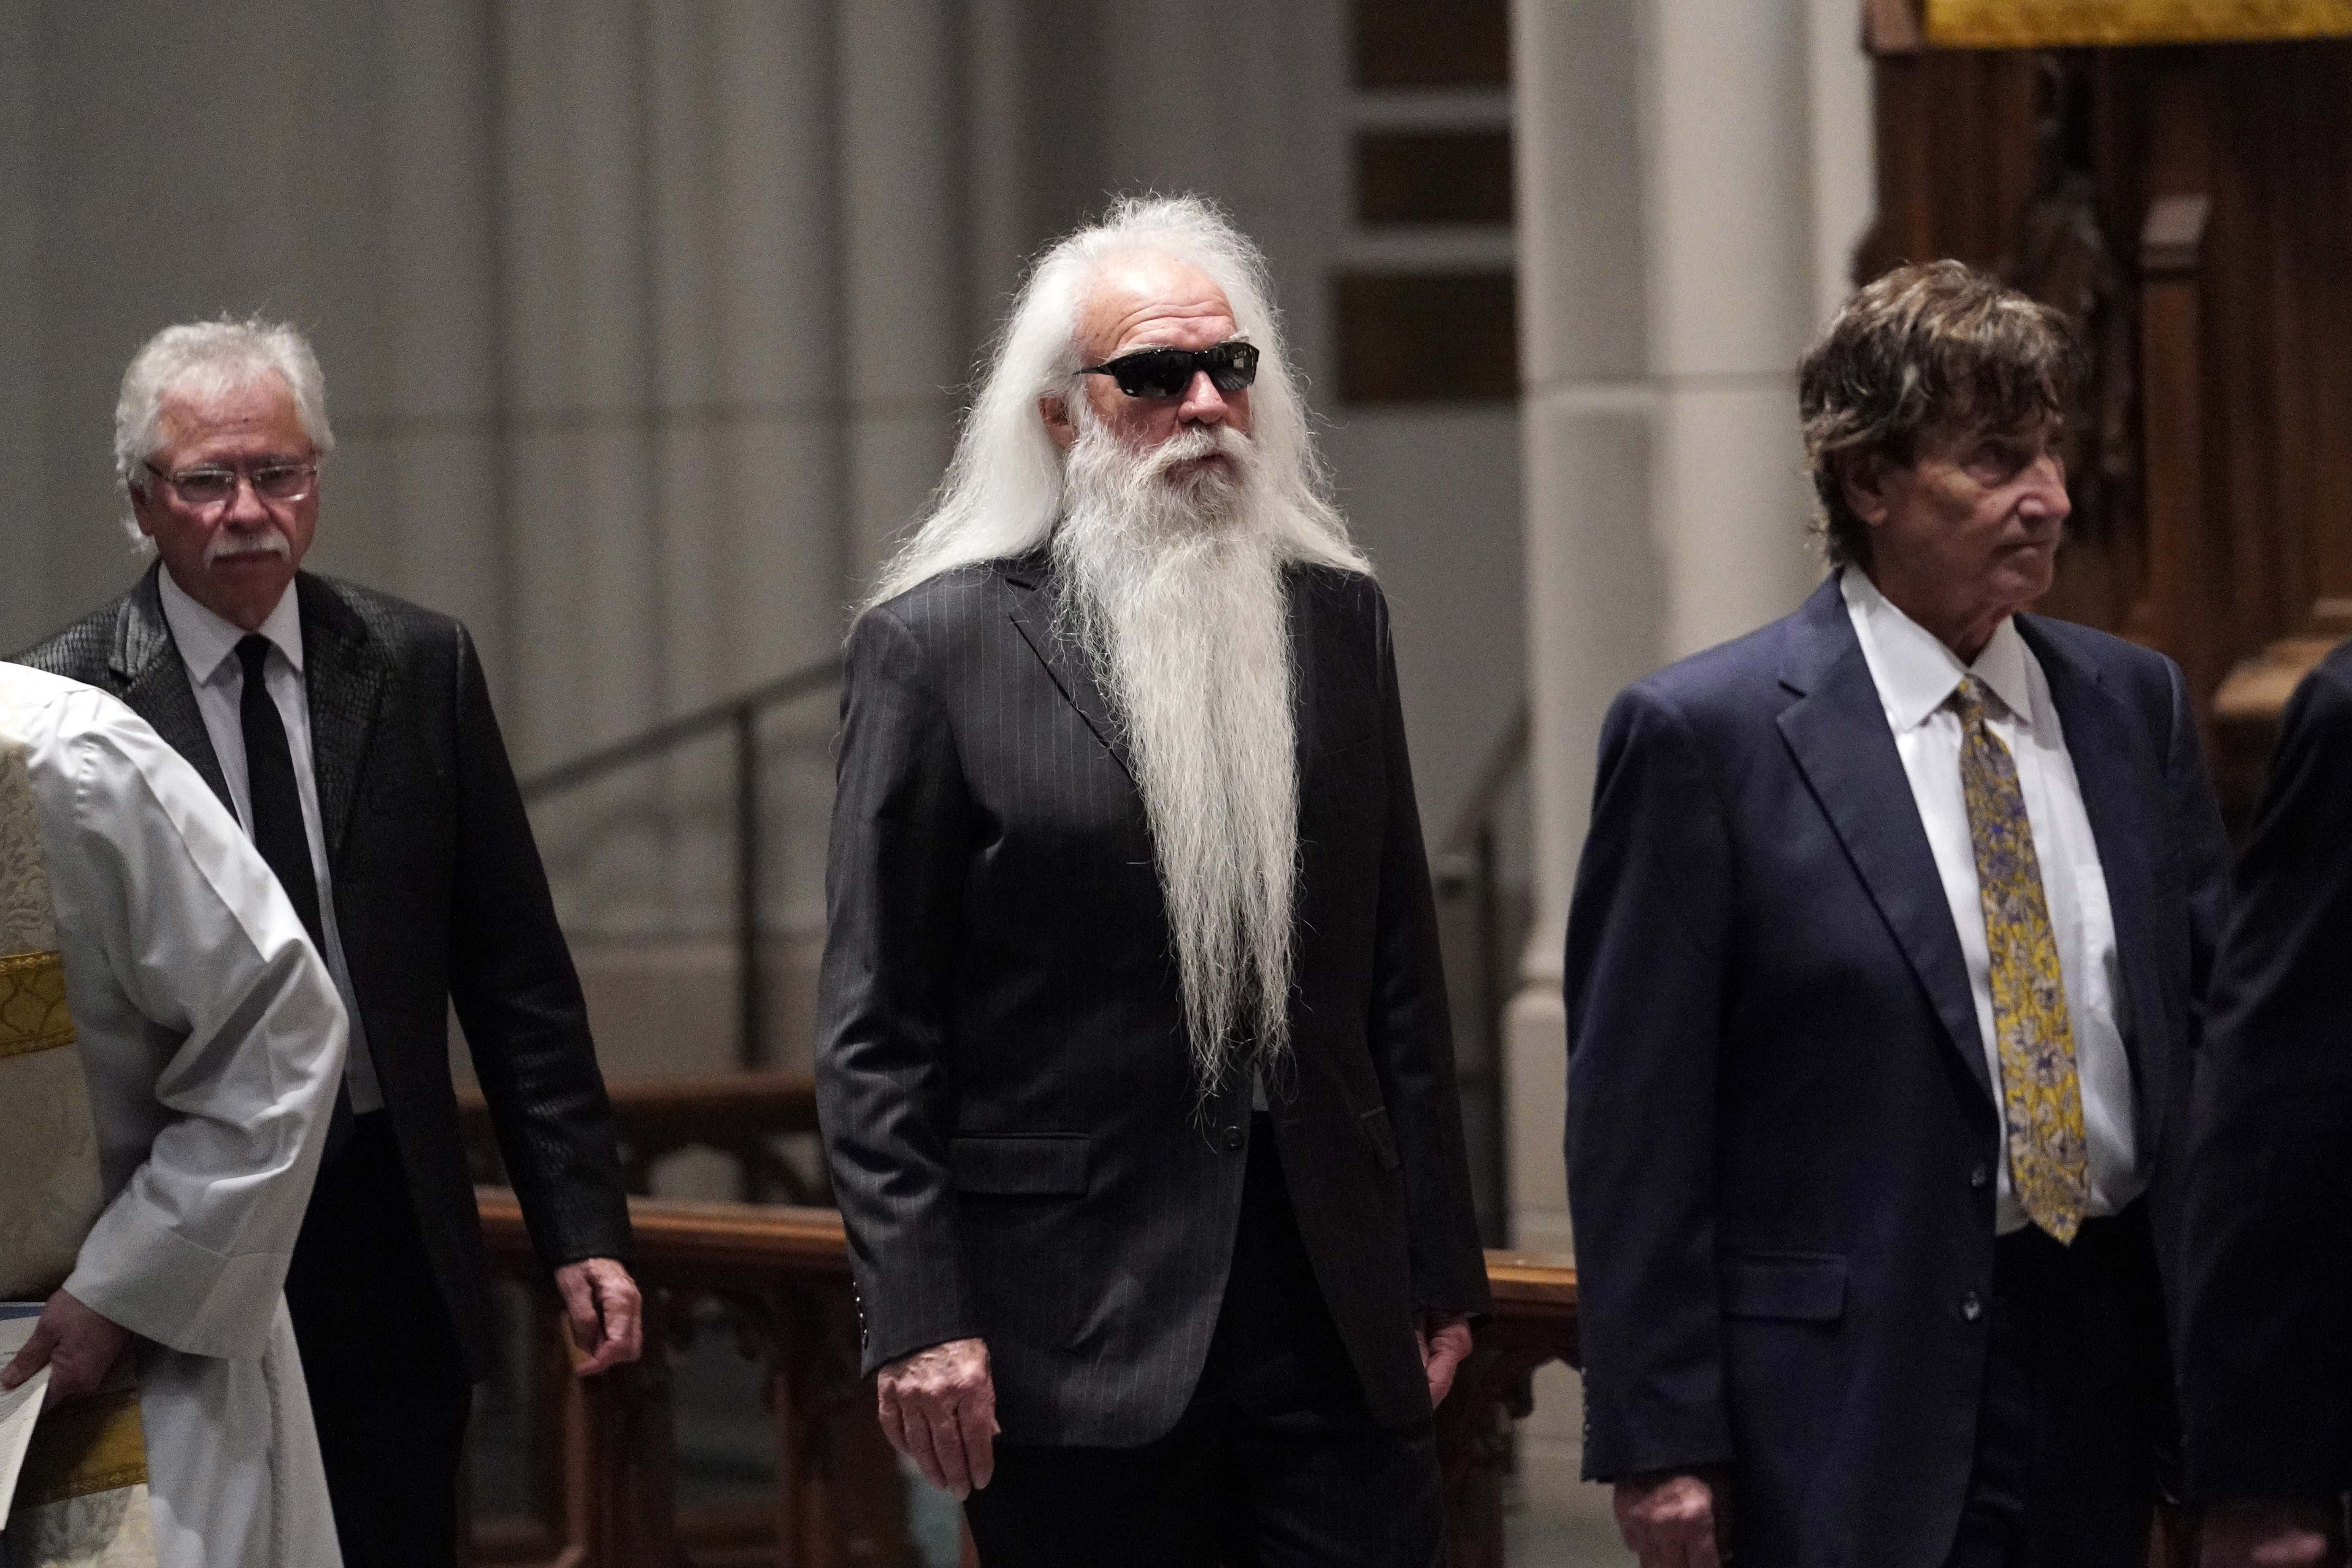 Members of the Oak Ridge Boys arrive for a funeral service for former President George H.W. Bush at St. Martin's Episcopal Church Thursday, Dec. 6, 2018, in Houston. (AP Photo/David J. Phillip, Pool)